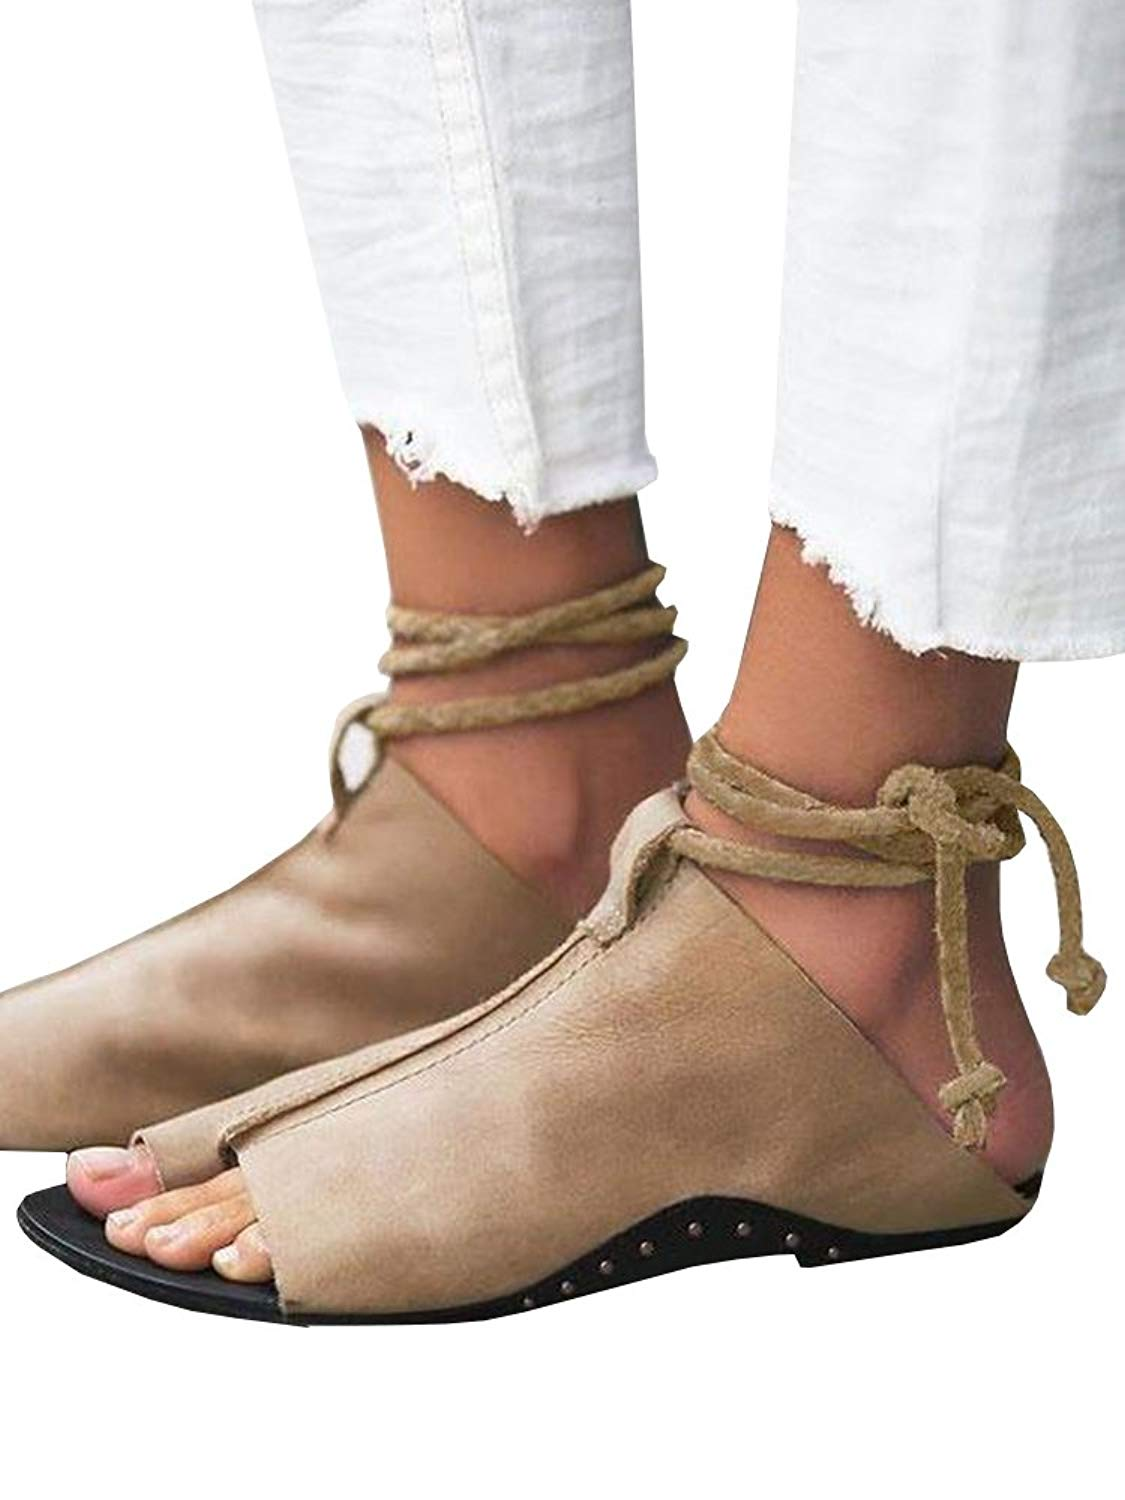 9485703eac5bb2 Mackin J 254-3 Velvet Thong Open Toe Slip On Slide Mules. null. null. Get  Quotations · Womens Roman Thong Lace up Flat Flip Flop Cut Out Gladiator  Ankle ...